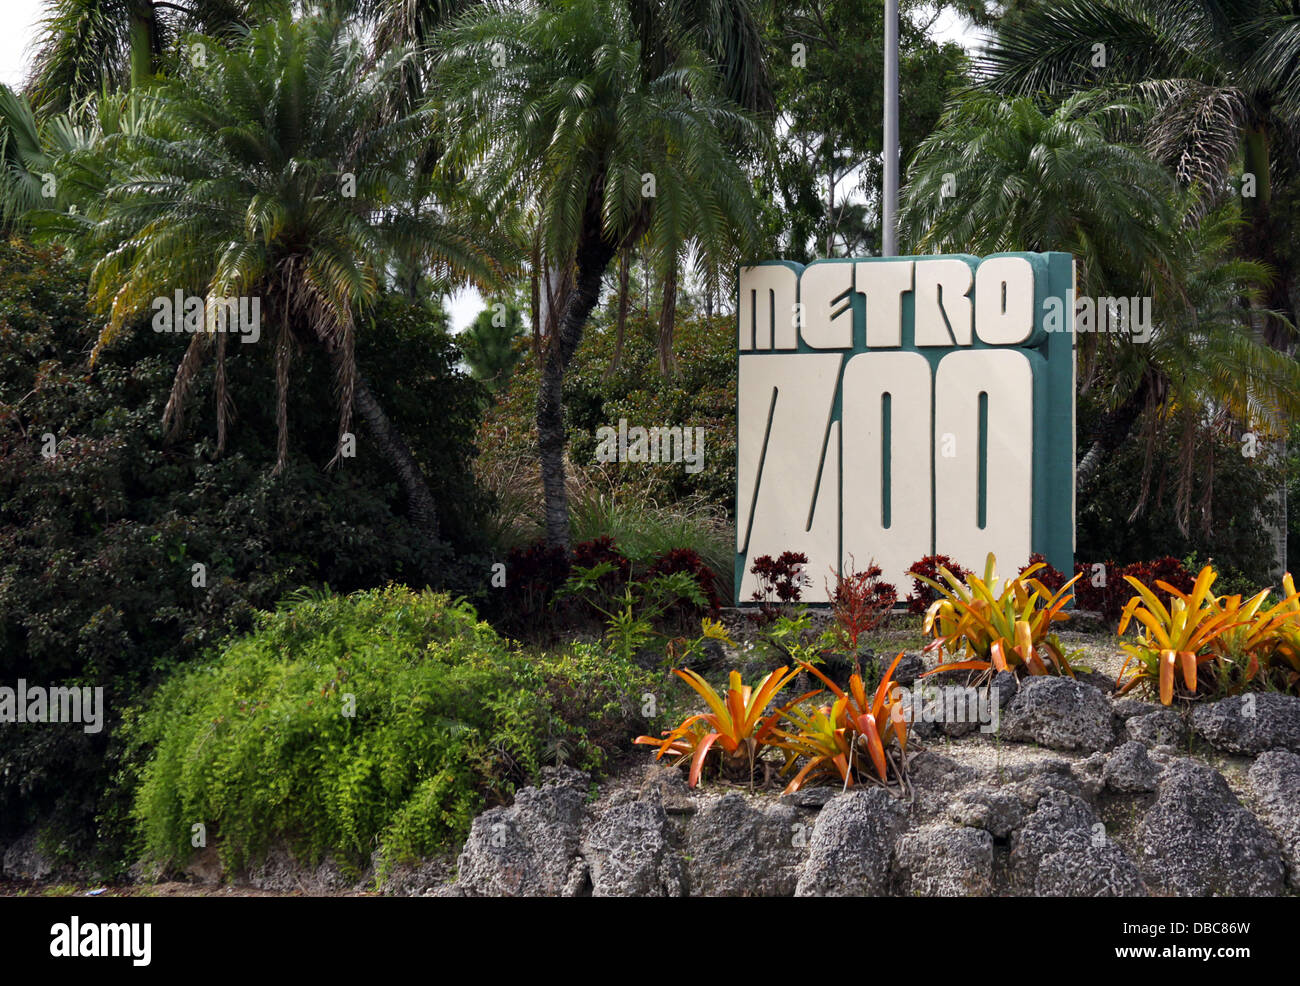 Miami Metro Zoo welcome sign at the entrance with some landscaping.  Located in Dade County it is a major attraction - Stock Image